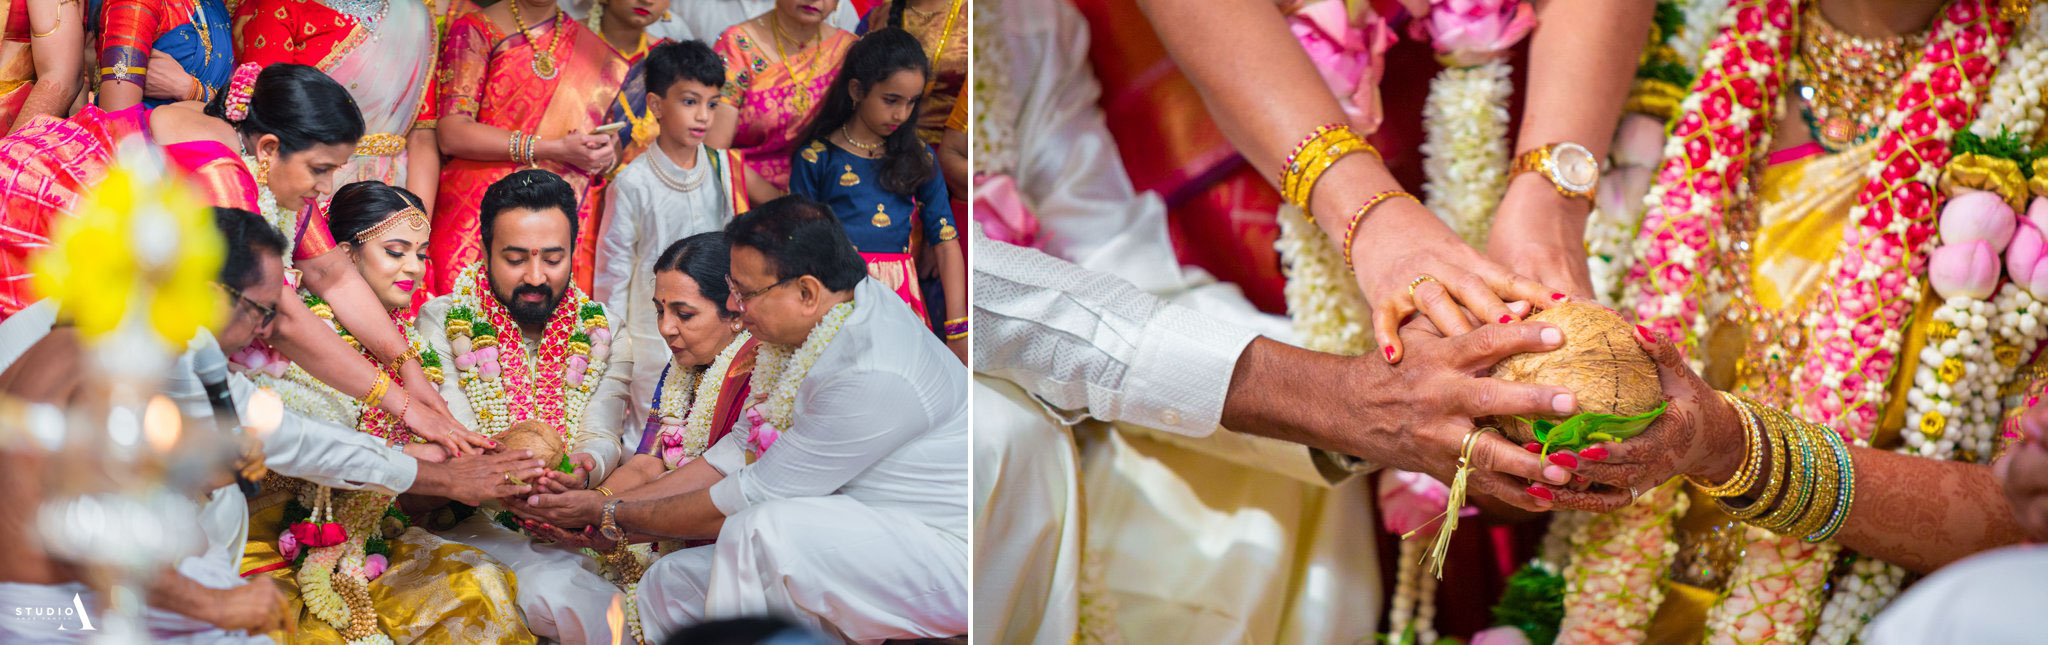 best-candid-wedding-photography-studioa-chennai-20